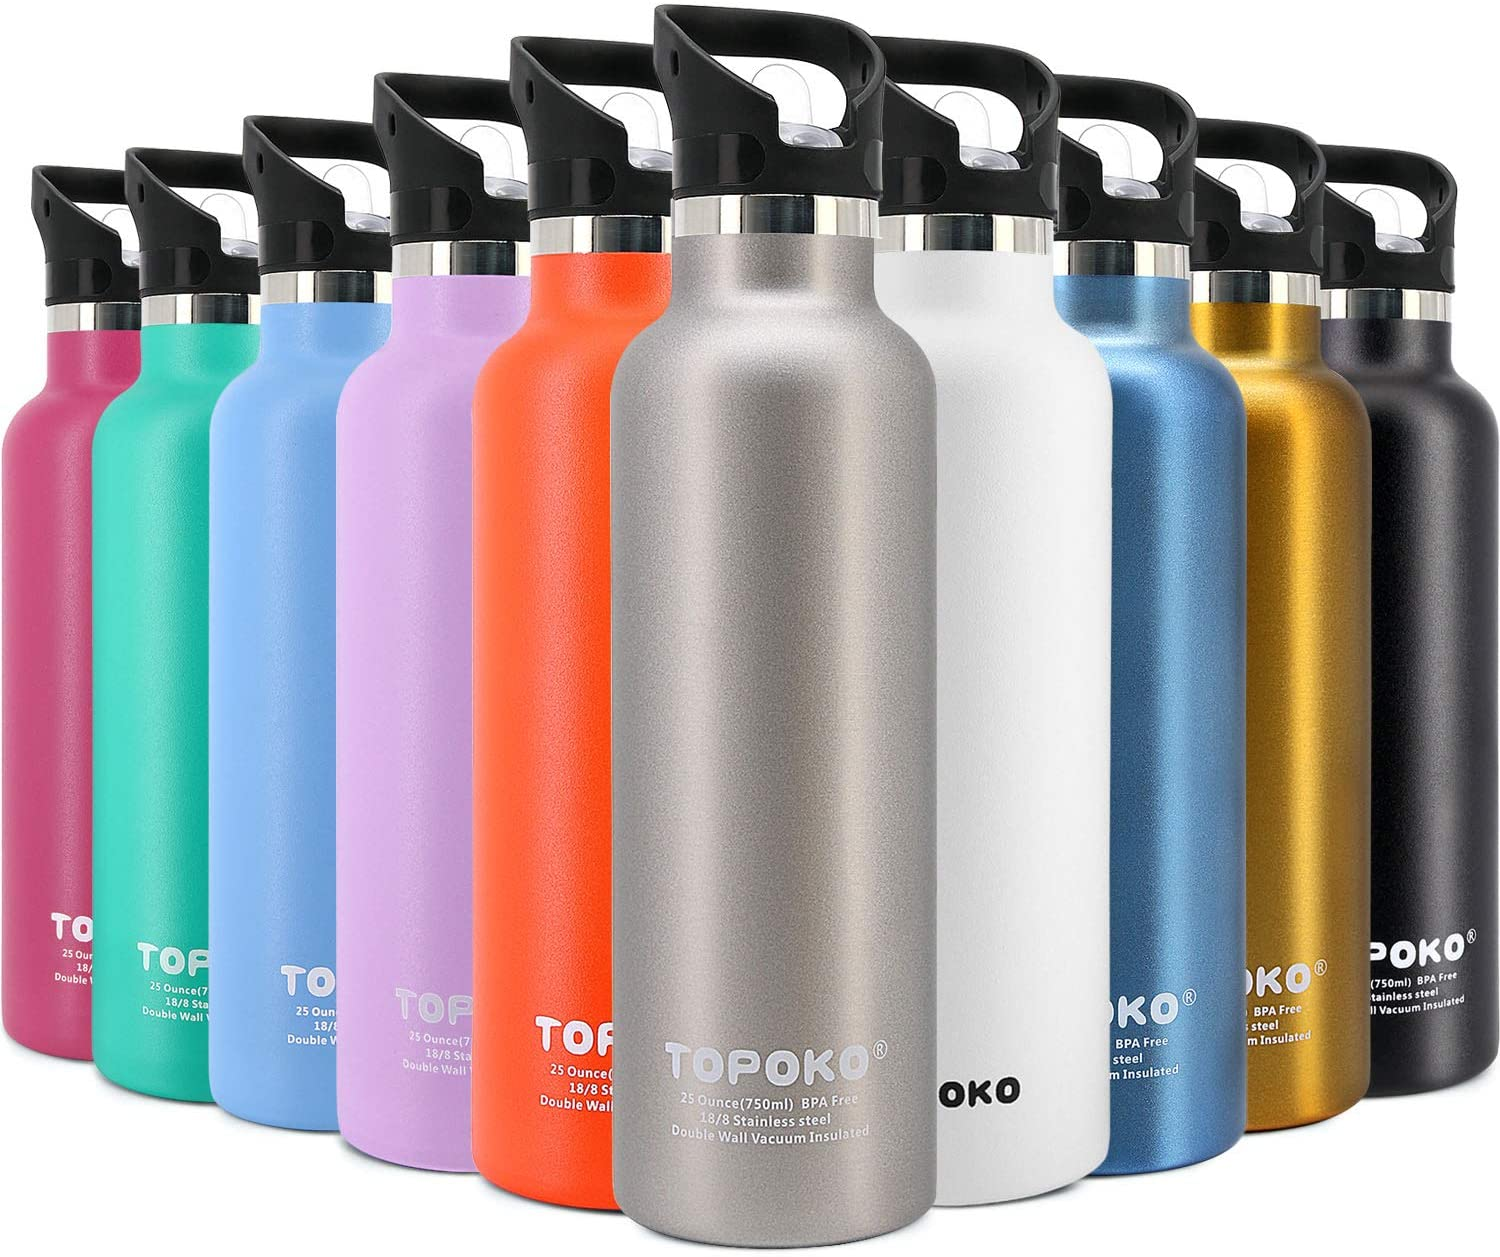 TOPOKO 25 OZ Double Wall Stainless Steel Water Bottle, Straw Lid with Handle or Bite Valve Top, Vacuum Insulated, Sweat Proof, Leak Proof Thermos Standard Mouth. (Gray Straw lid)